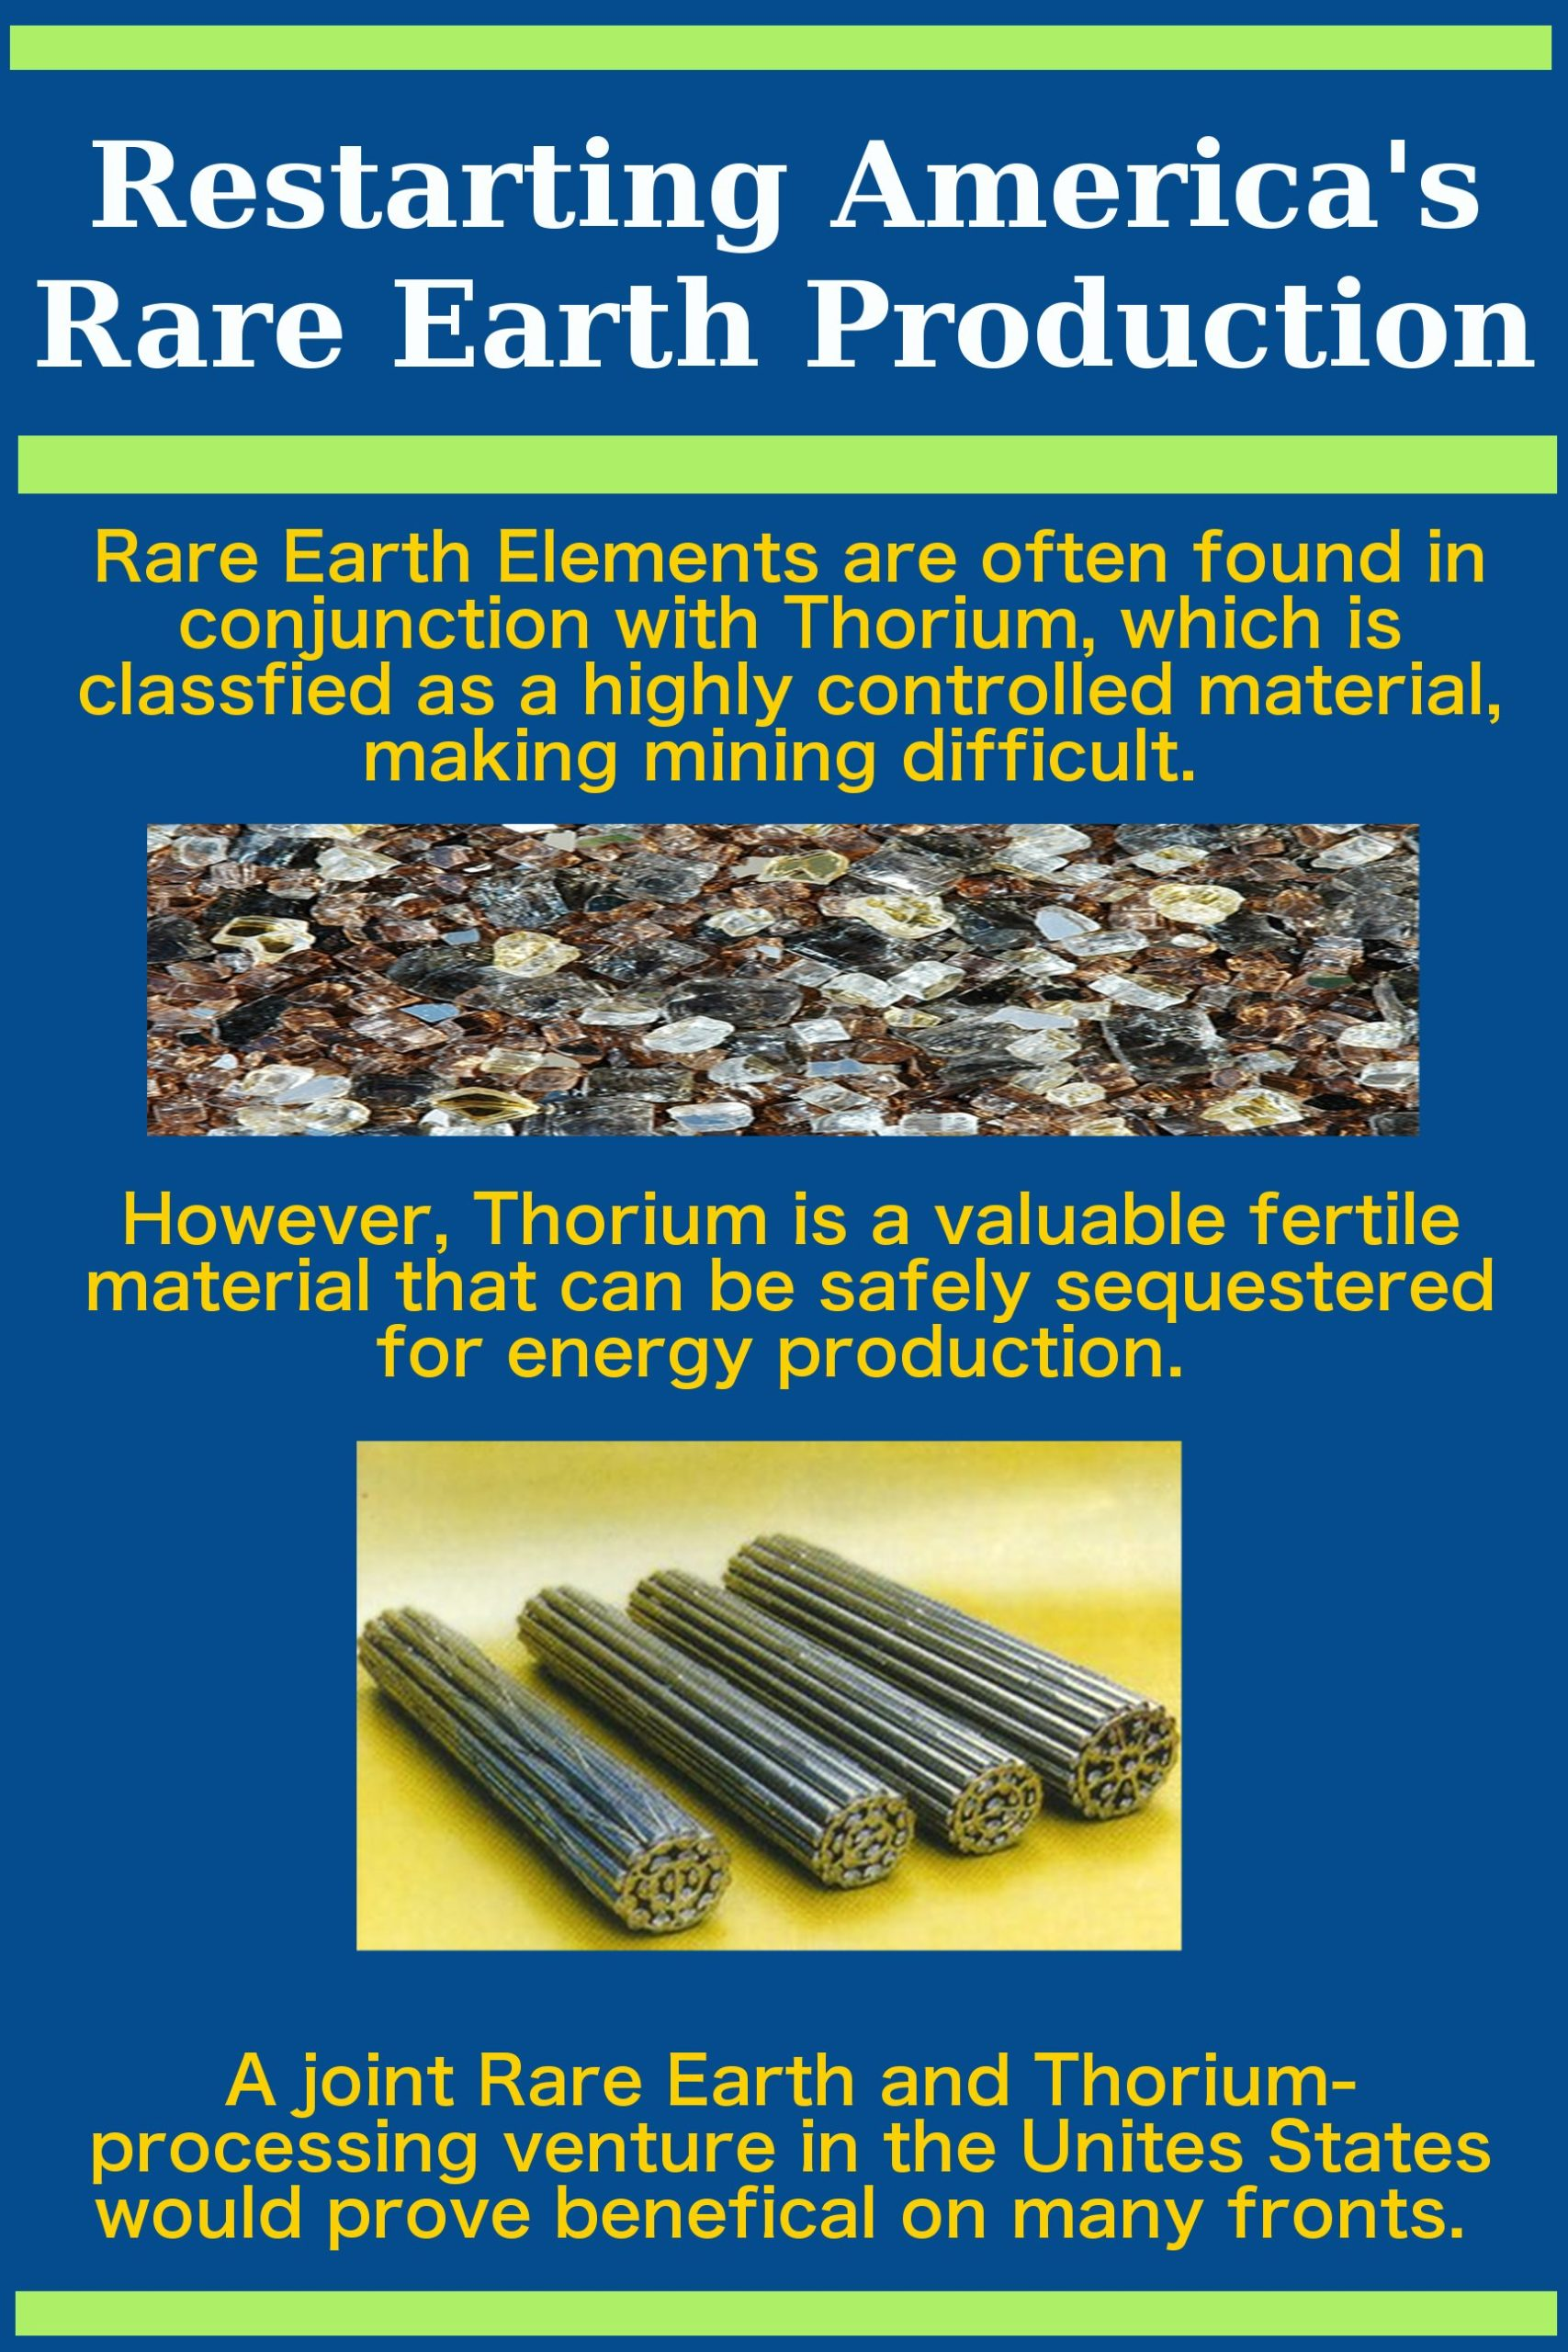 Rare Earth Thorium Poster